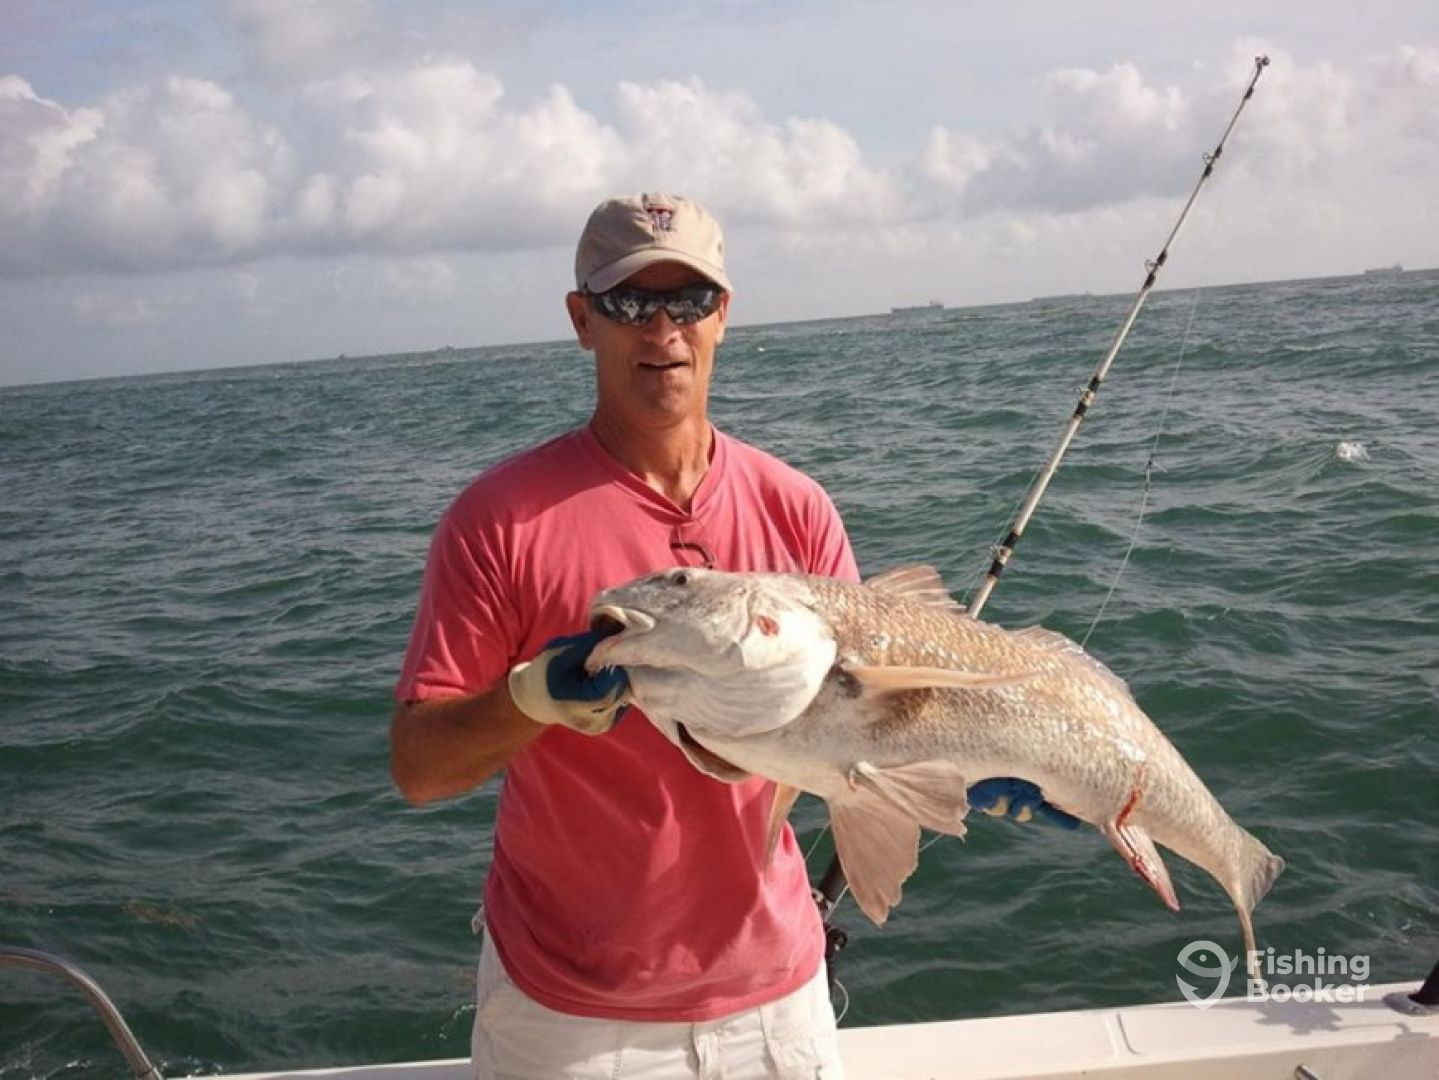 Get u sum charters 27ft sea cat galveston tx for Galveston fishing charter